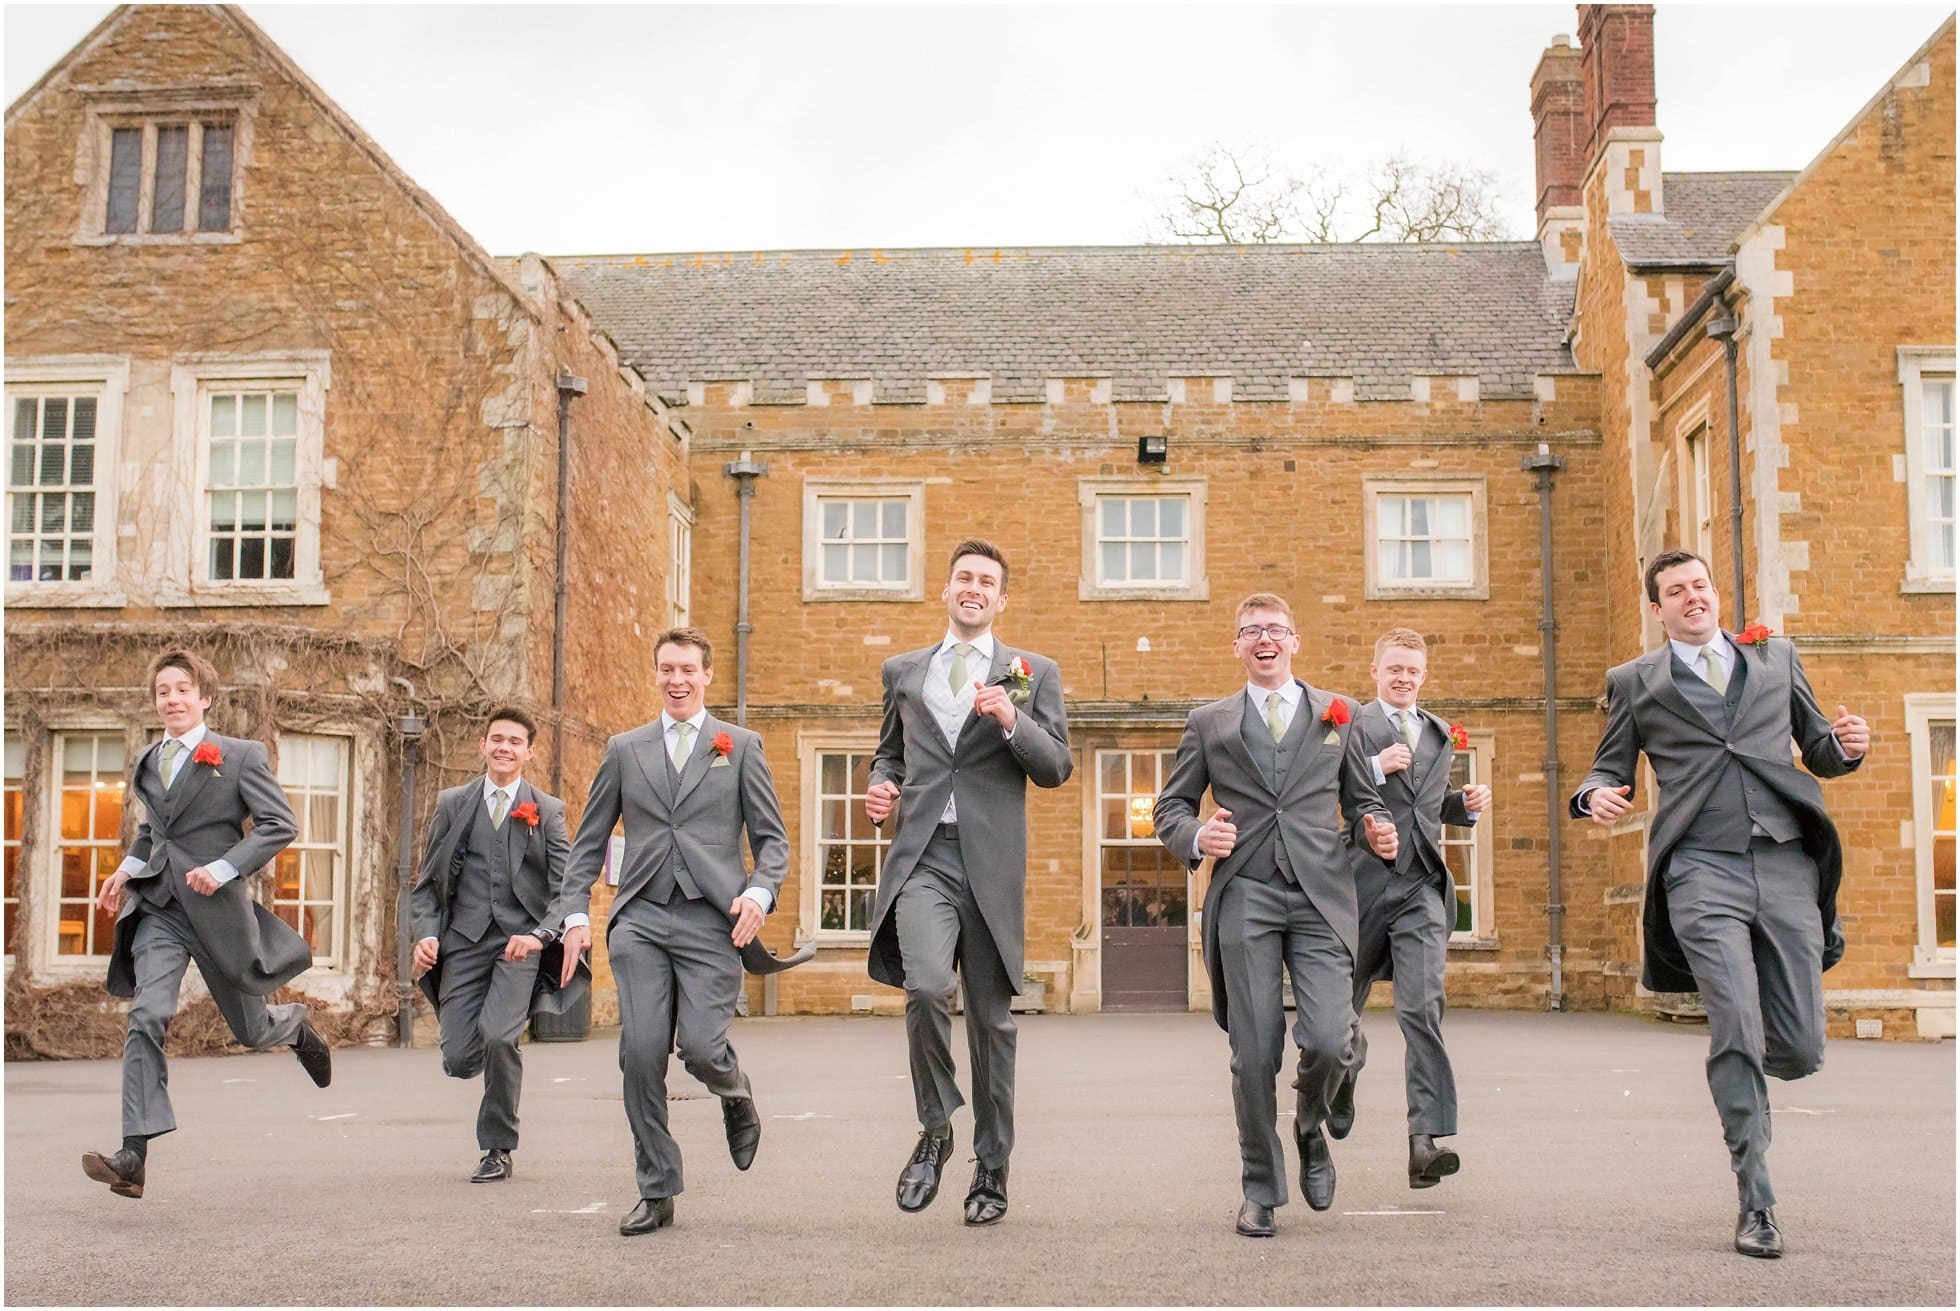 The groomsmen running in front of Brooksby Hall, Leicestershire